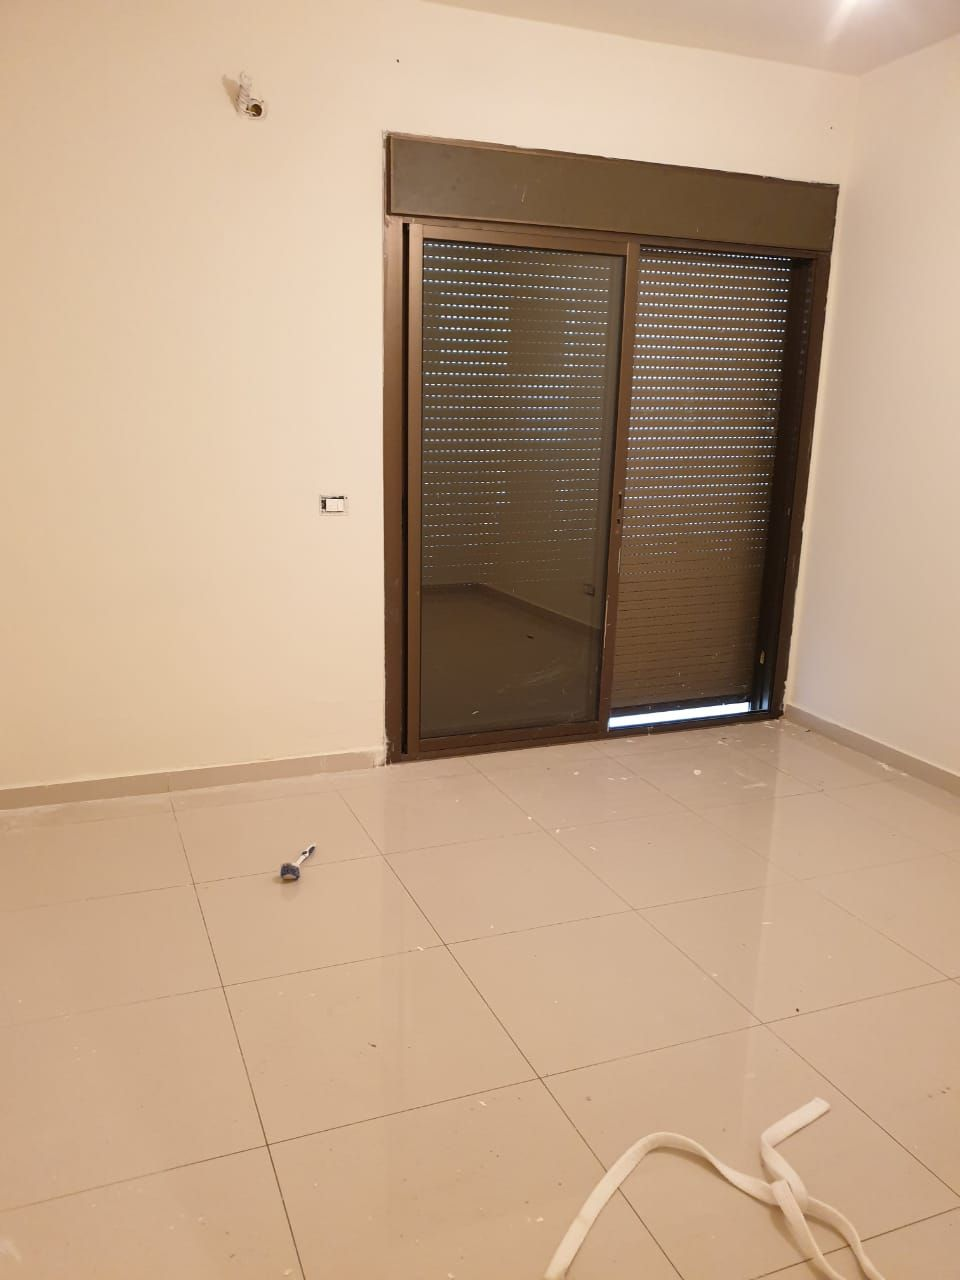 Apartment for rent in fanar near